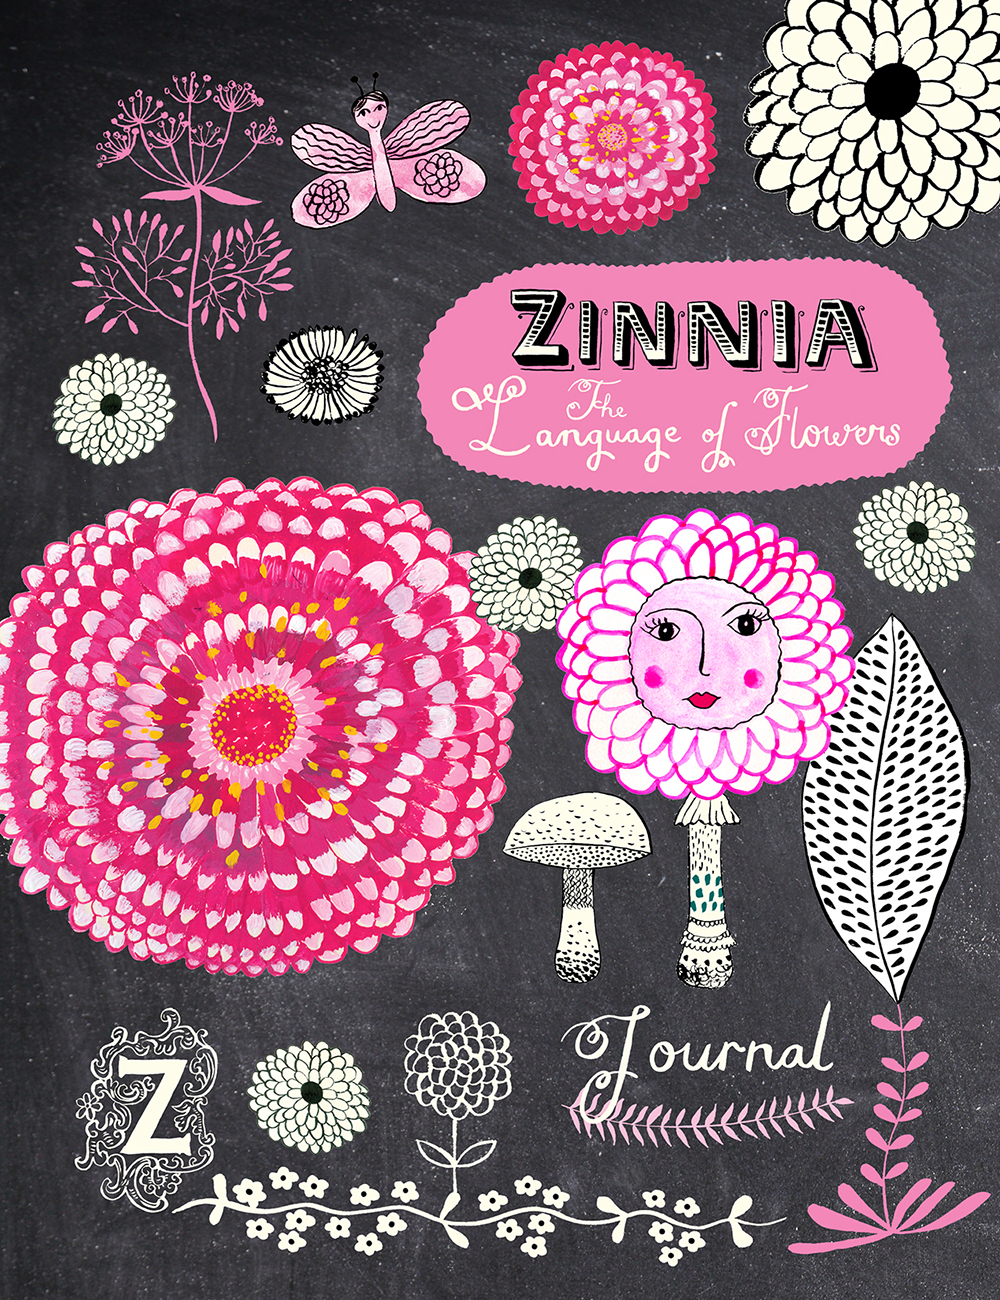 Zinnia collection journal cover by Marenthe.jpg